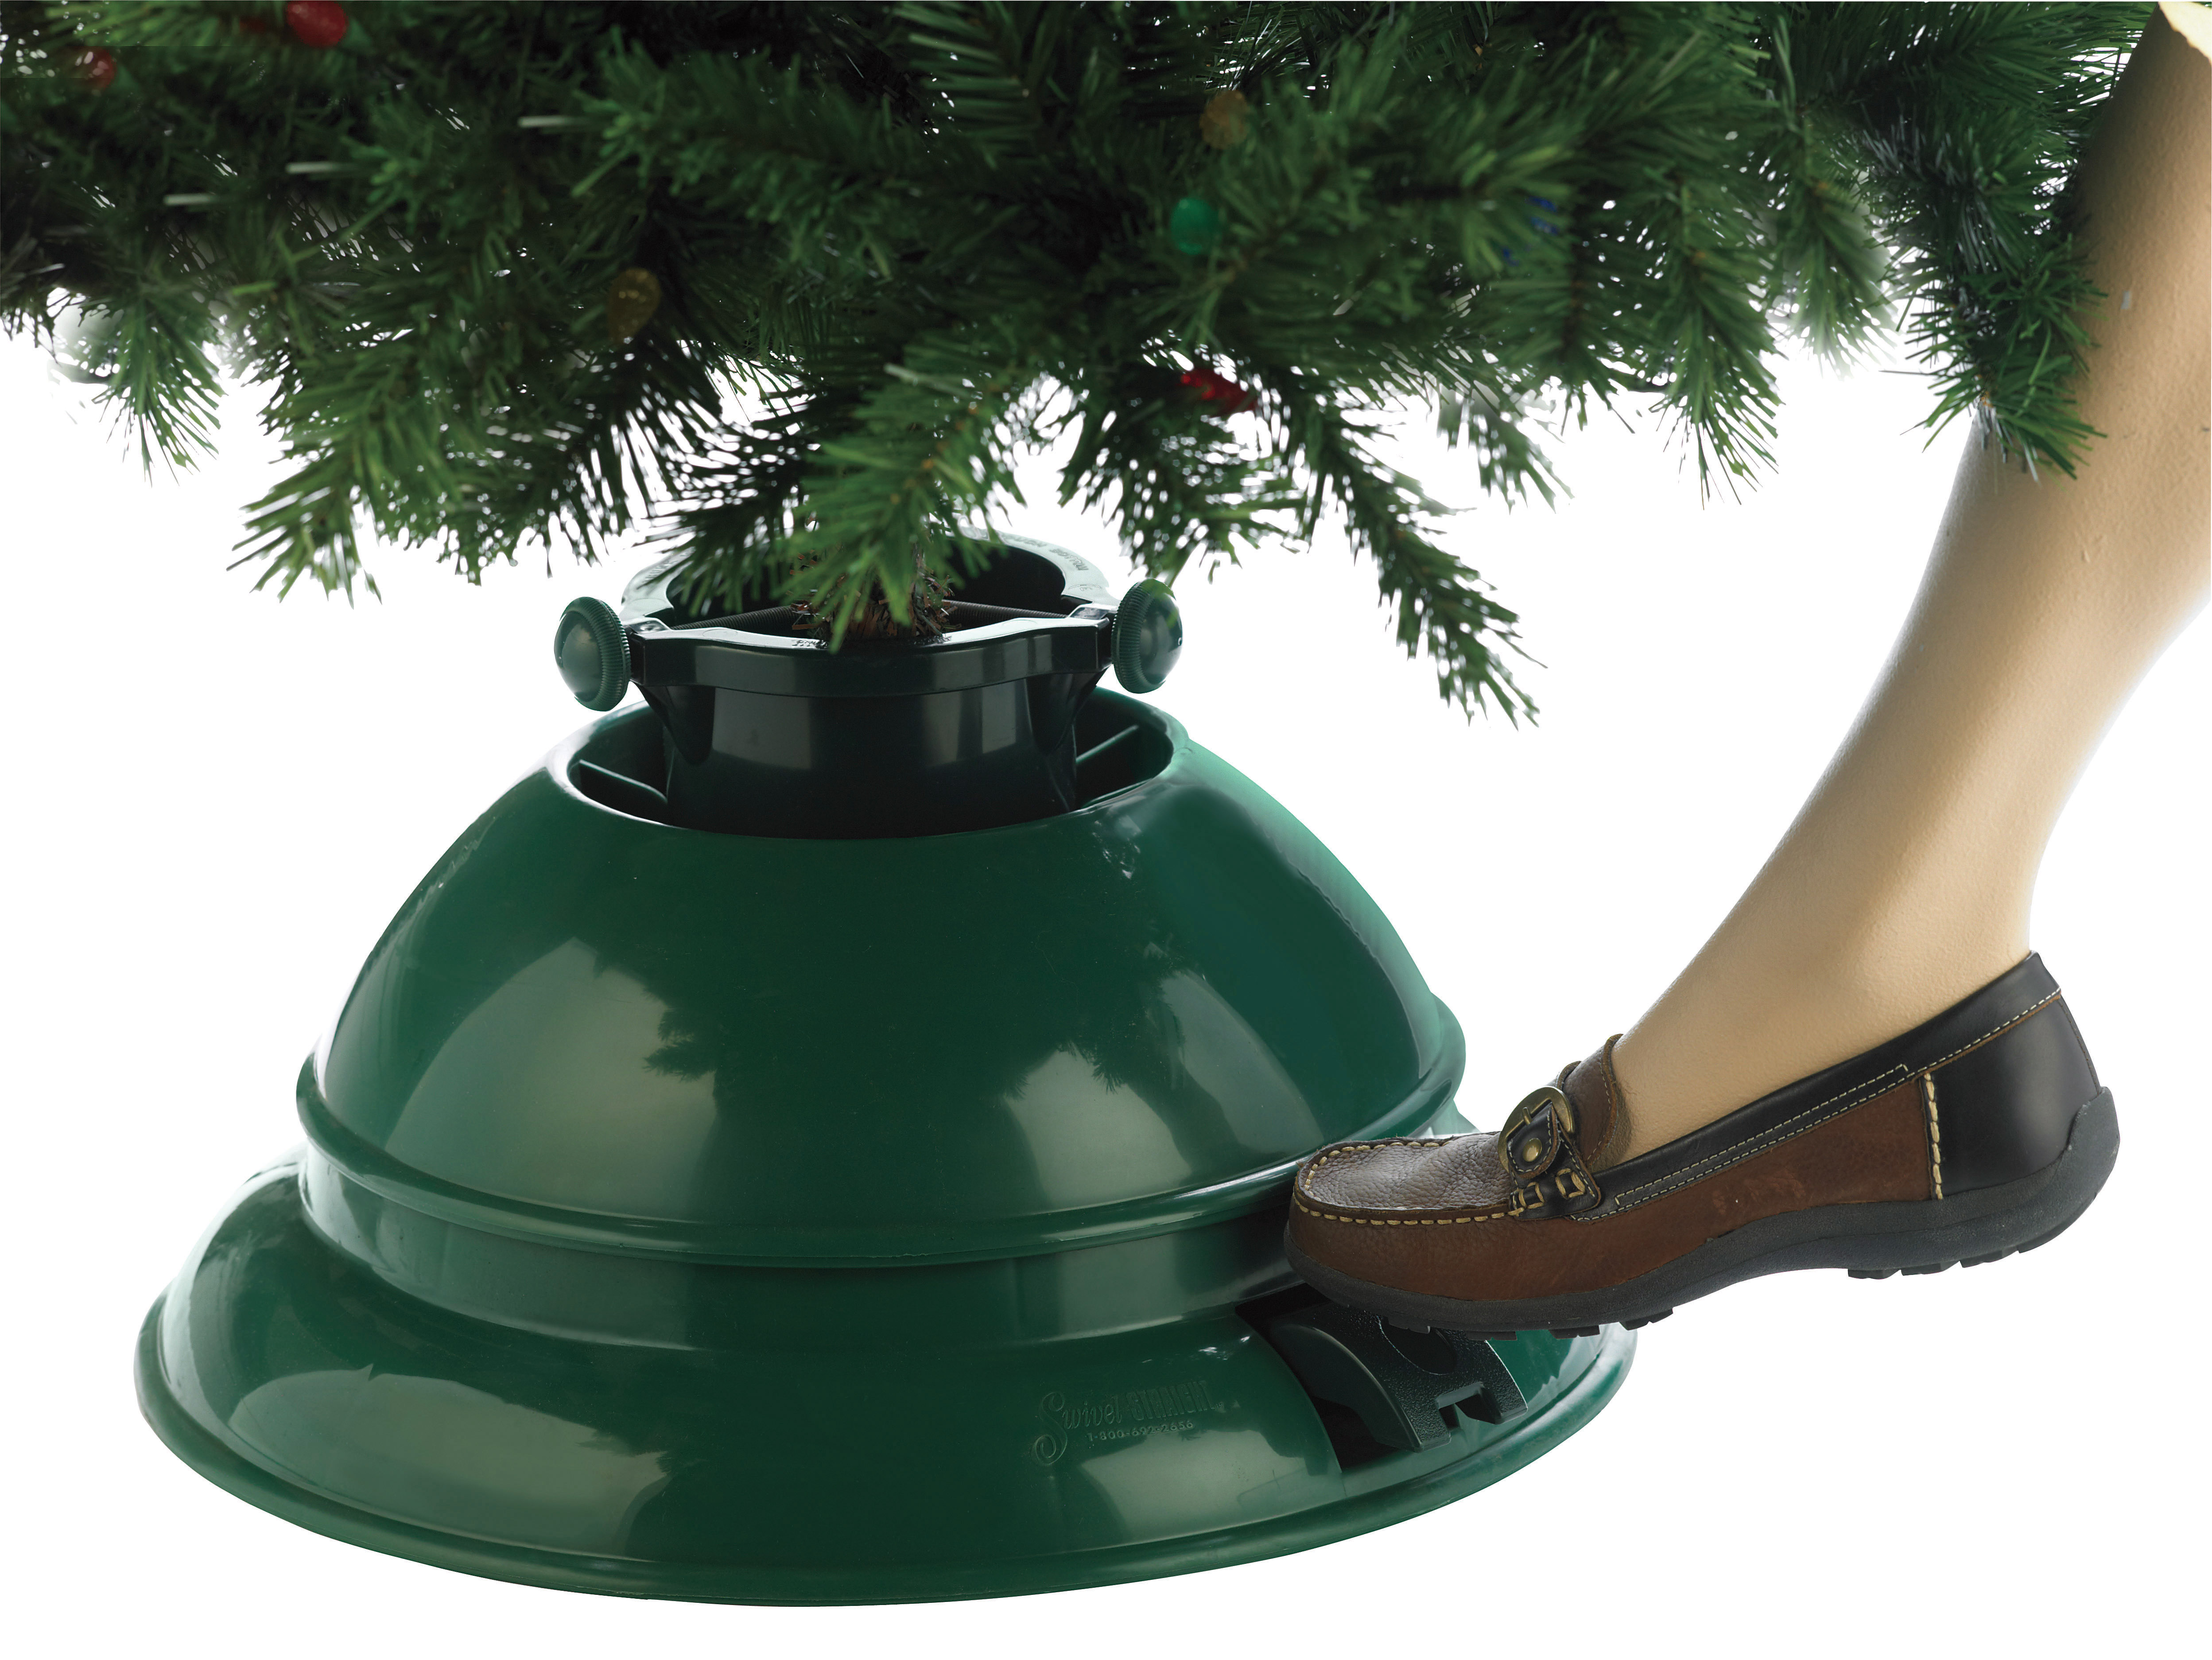 Swivel Christmas Tree Stands